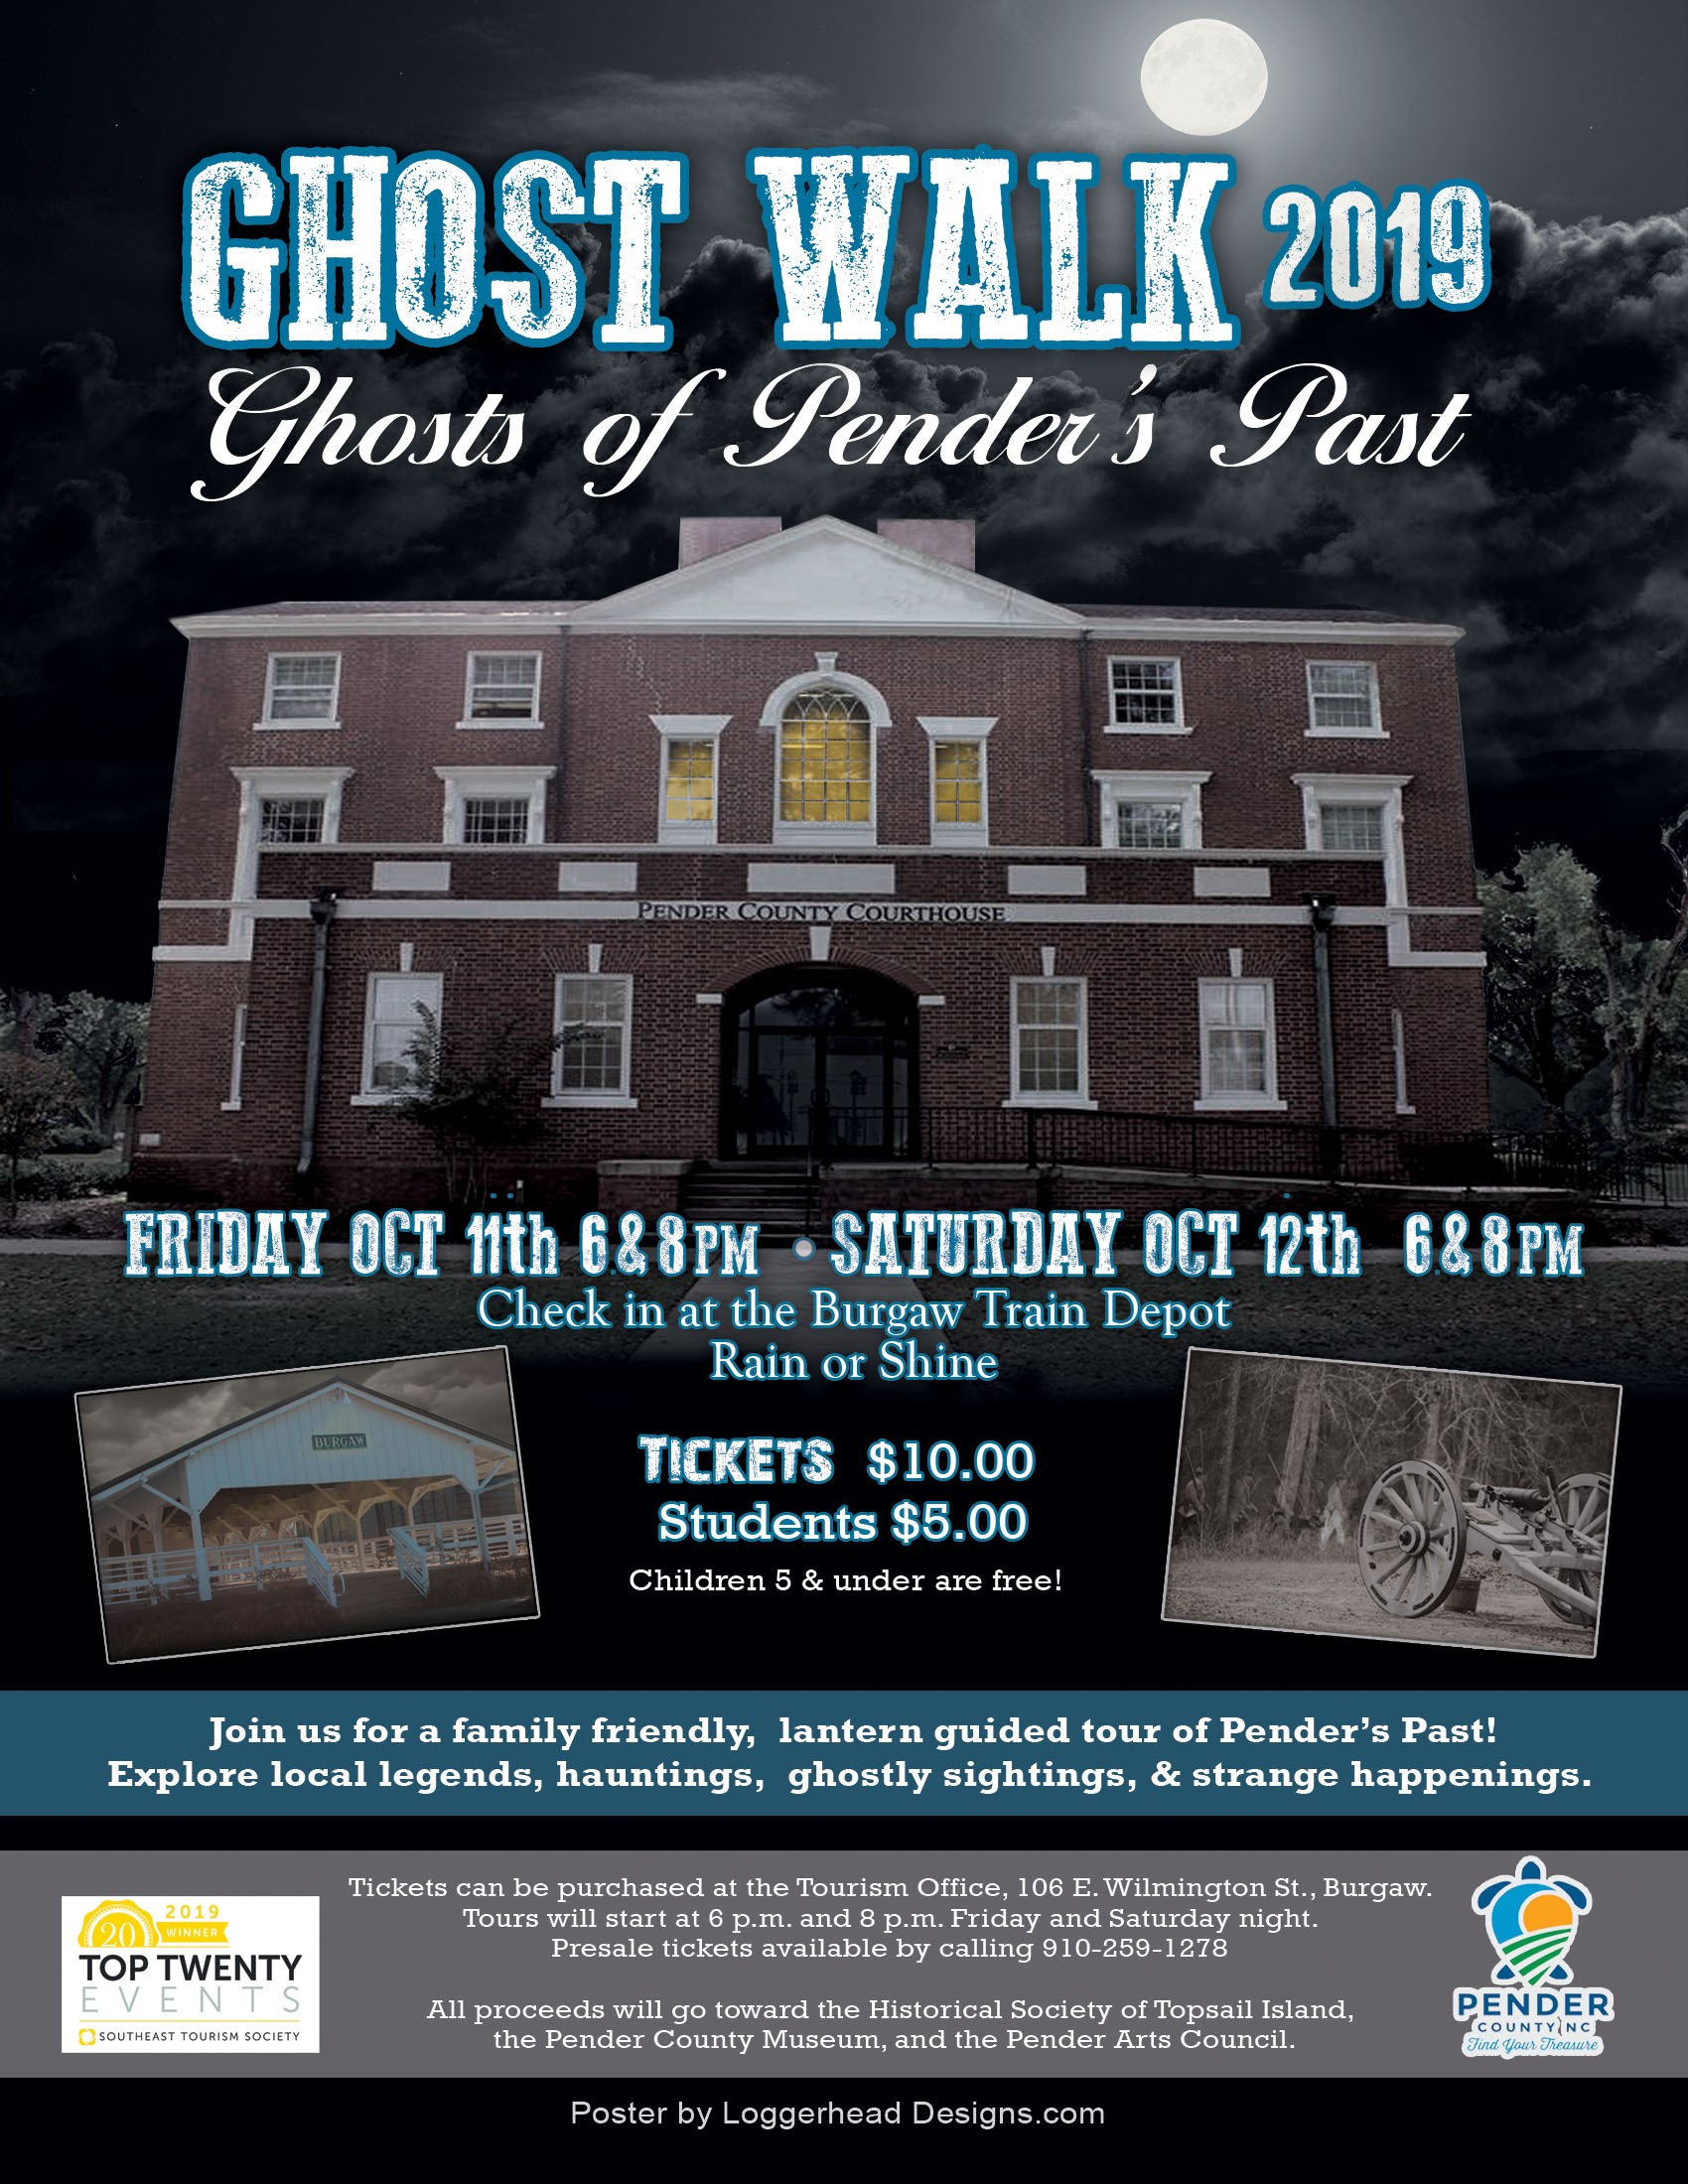 Ghost Walk of Pender's Past